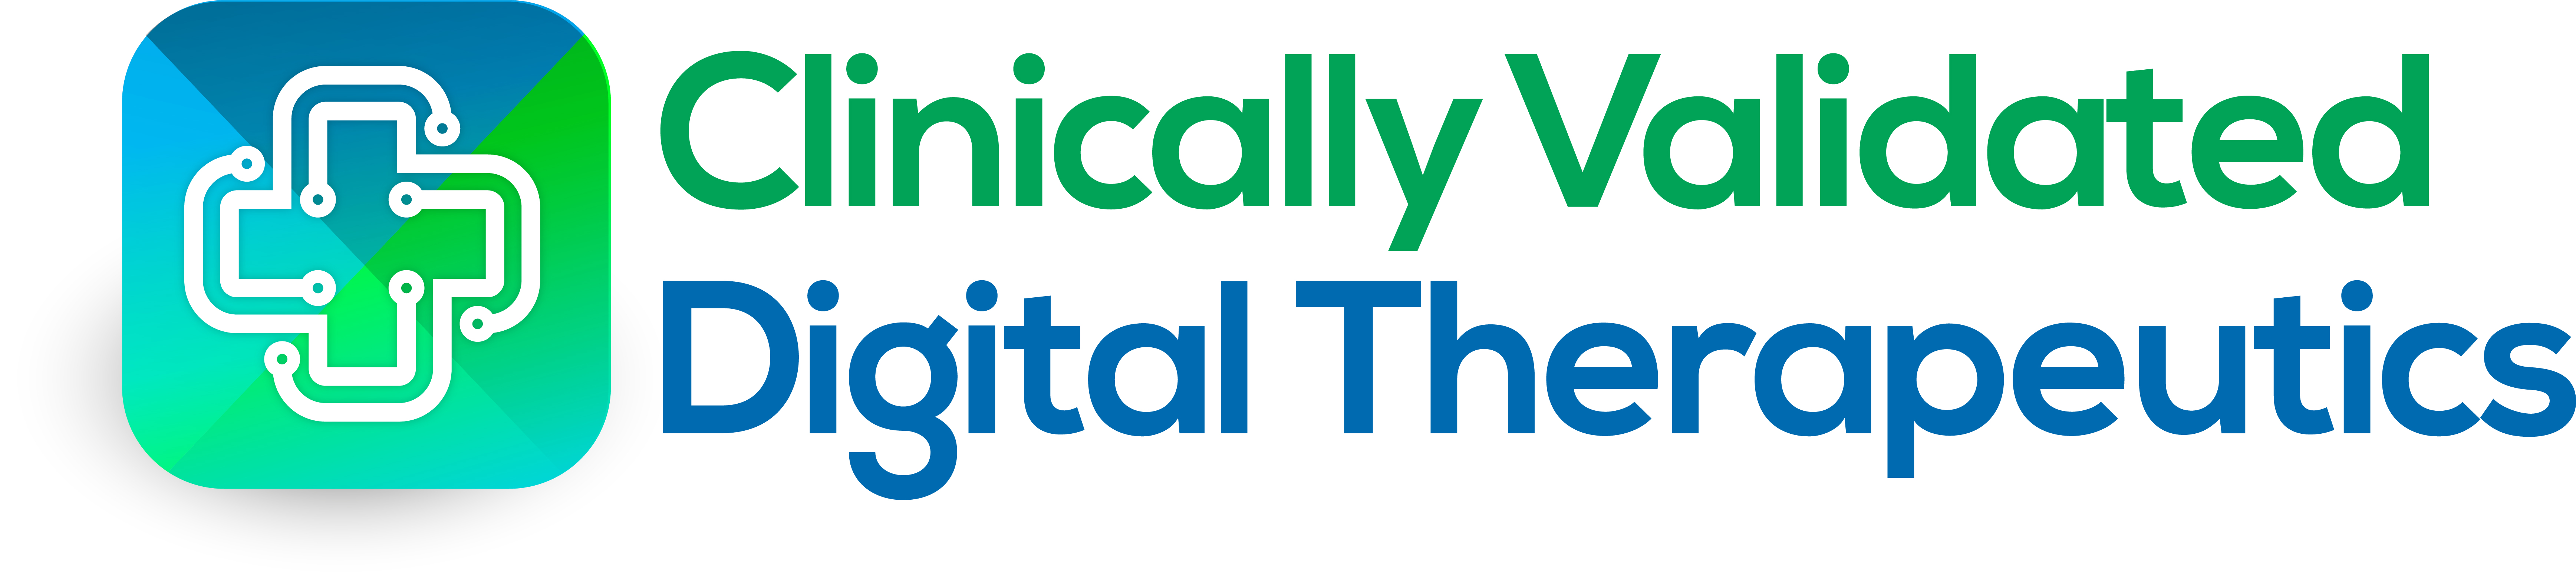 Clinically Validated Digital Therapeutics Summit logo